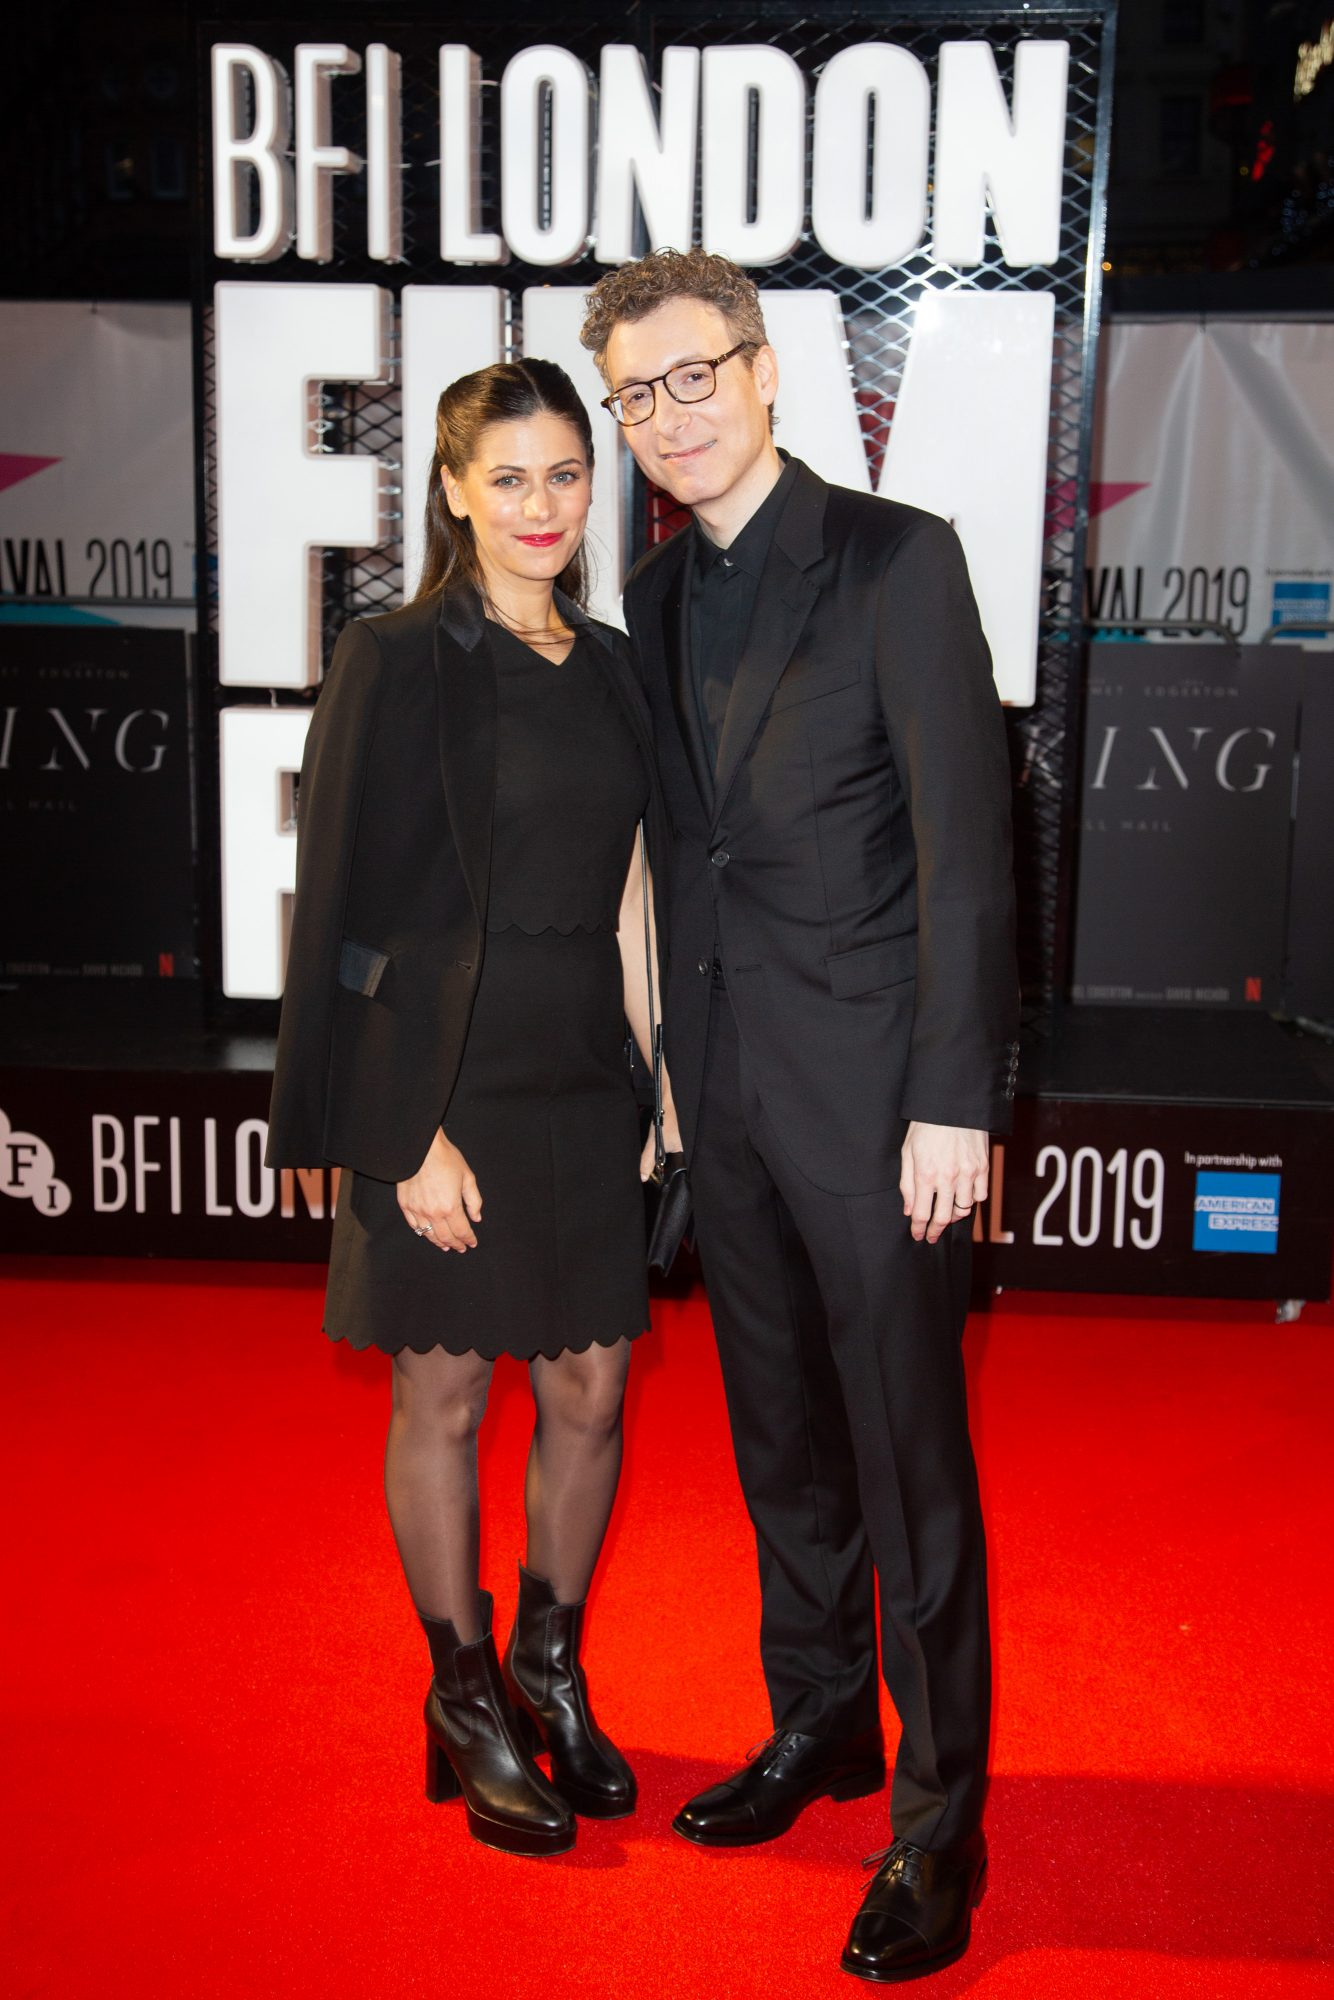 Nicholas Britell and Caitlin Sullivan at The King UK Premiere during the 63rd BFI London Film Festival at Odeon Luxe Leicester Square on 3rd October 2019.  Photos: Netflix